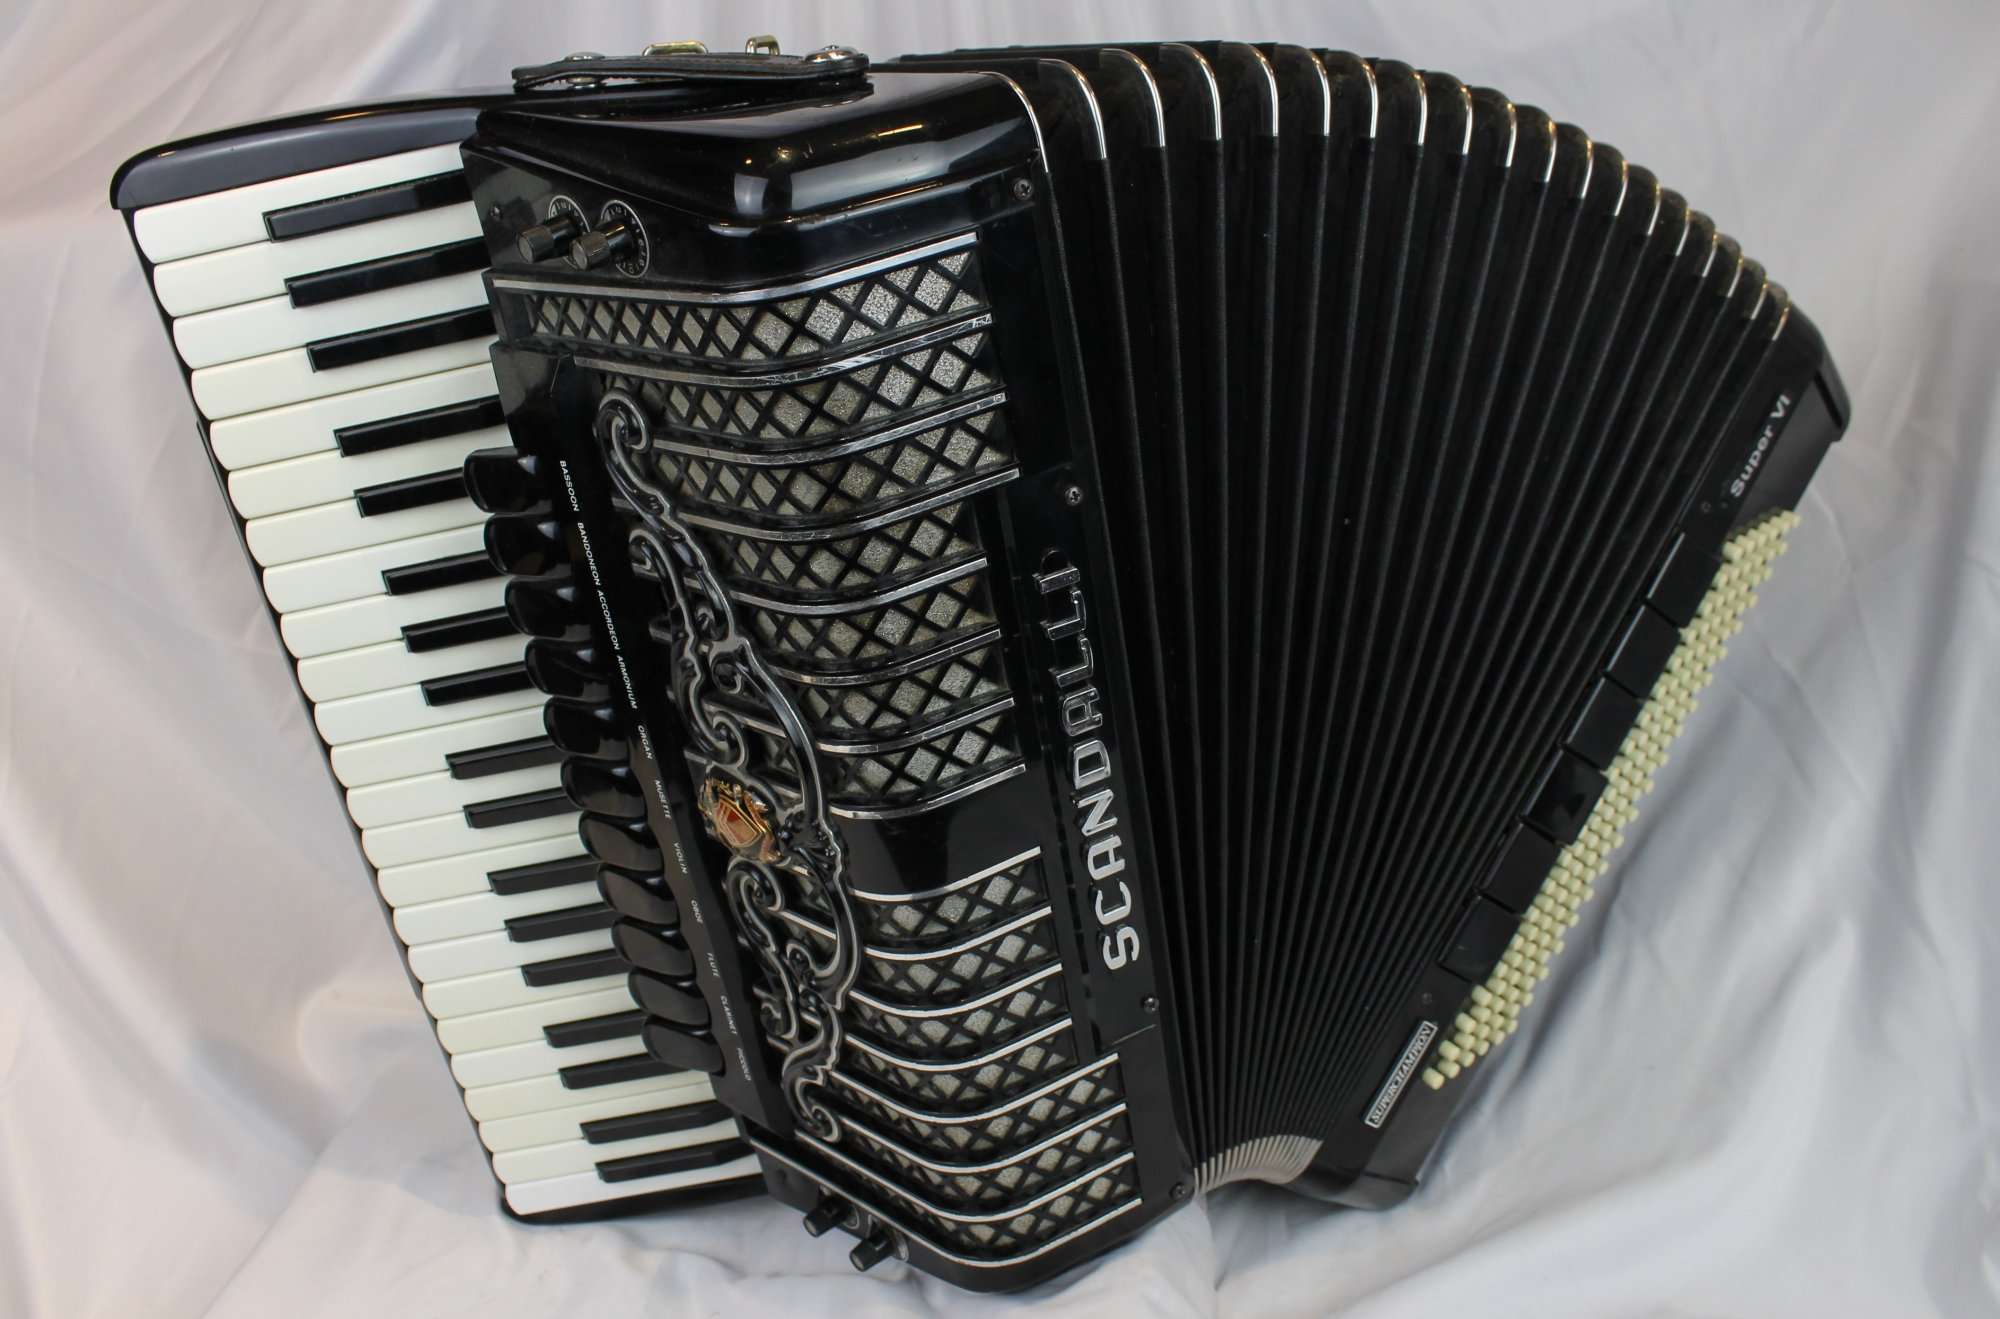 3905 - Black Scandalli Super VI Piano Accordion LMMH 41 120